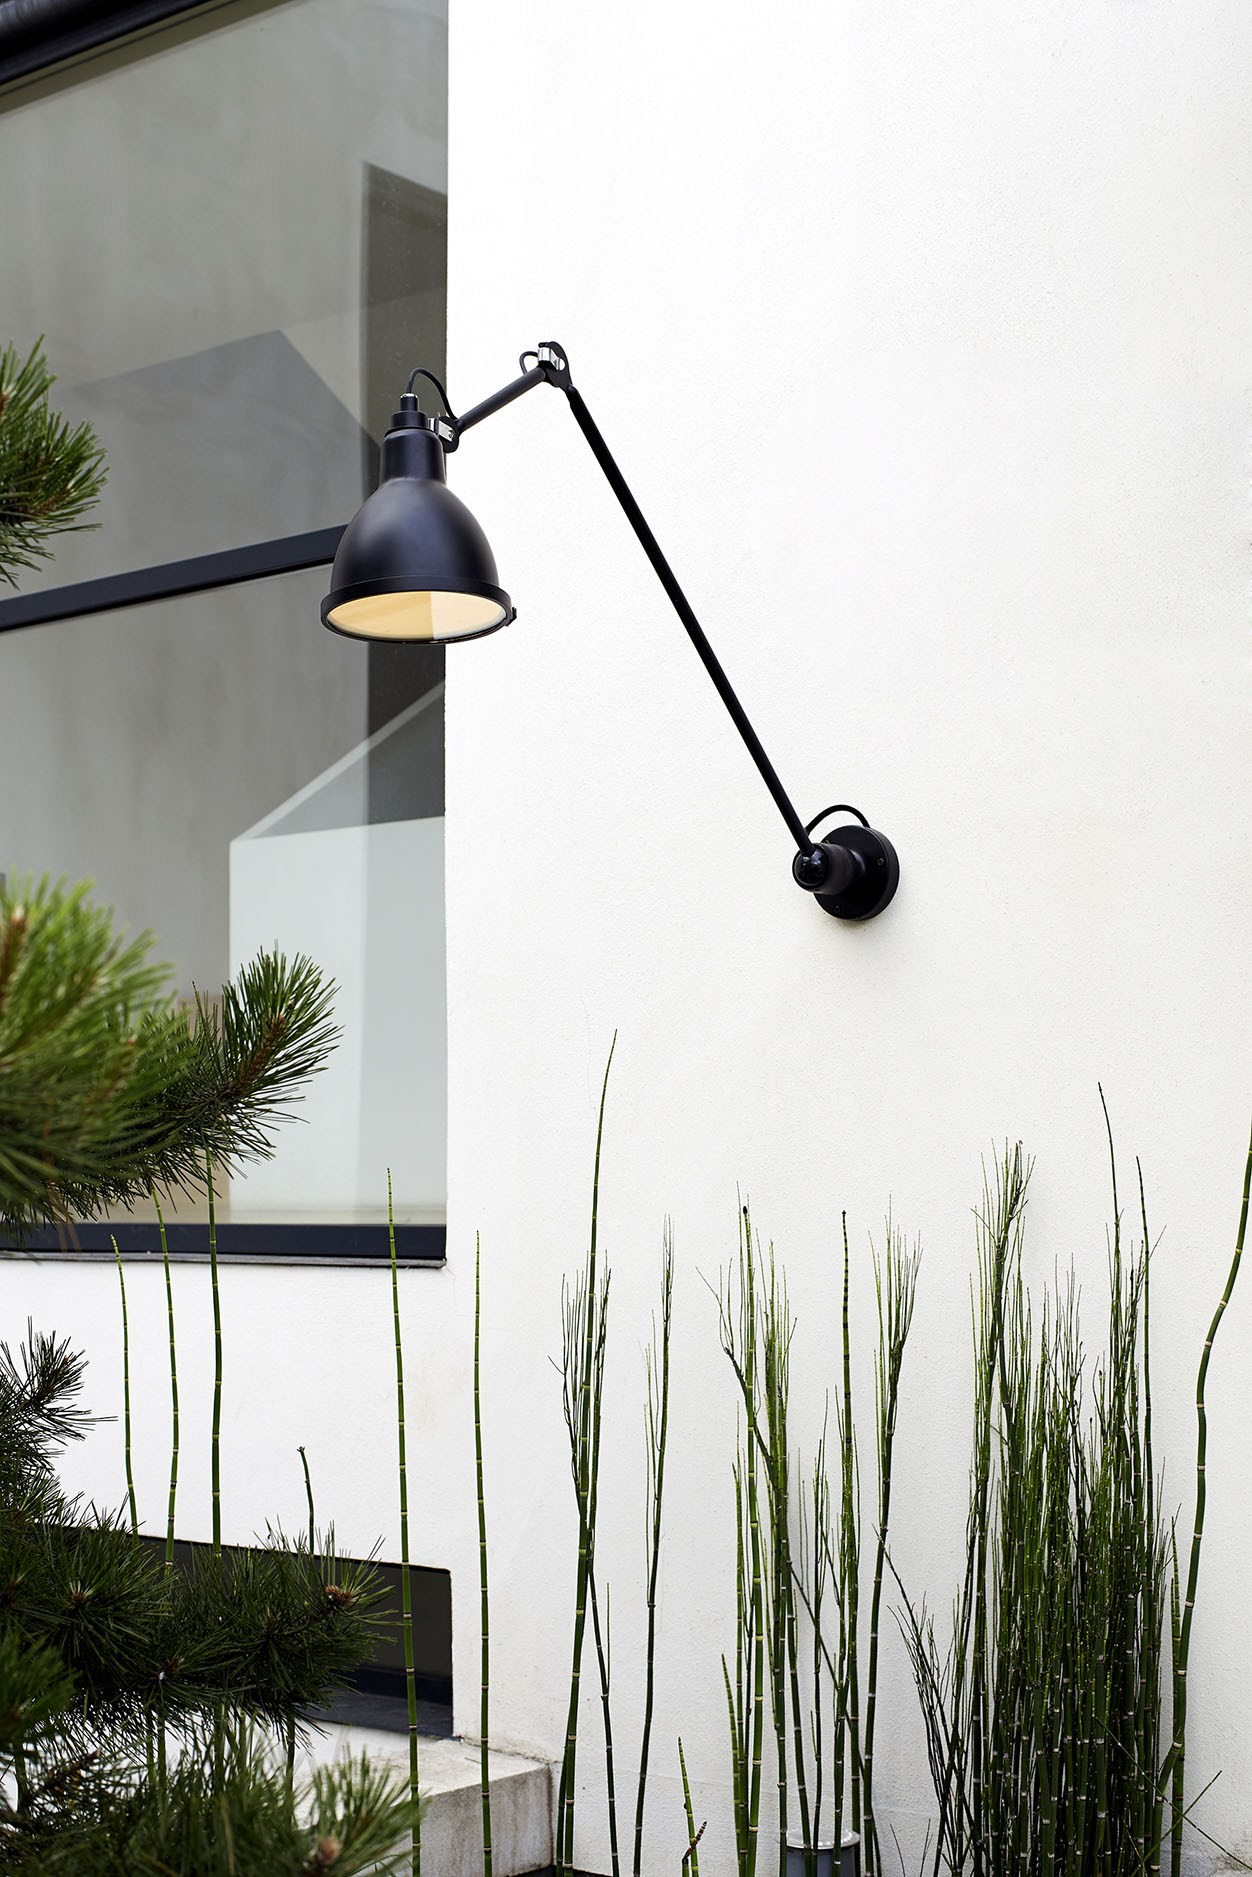 Adjustable steel wall lamp 304 xl 90 in and out by dcw ditions design bernard albin gras - Dcw edities ...